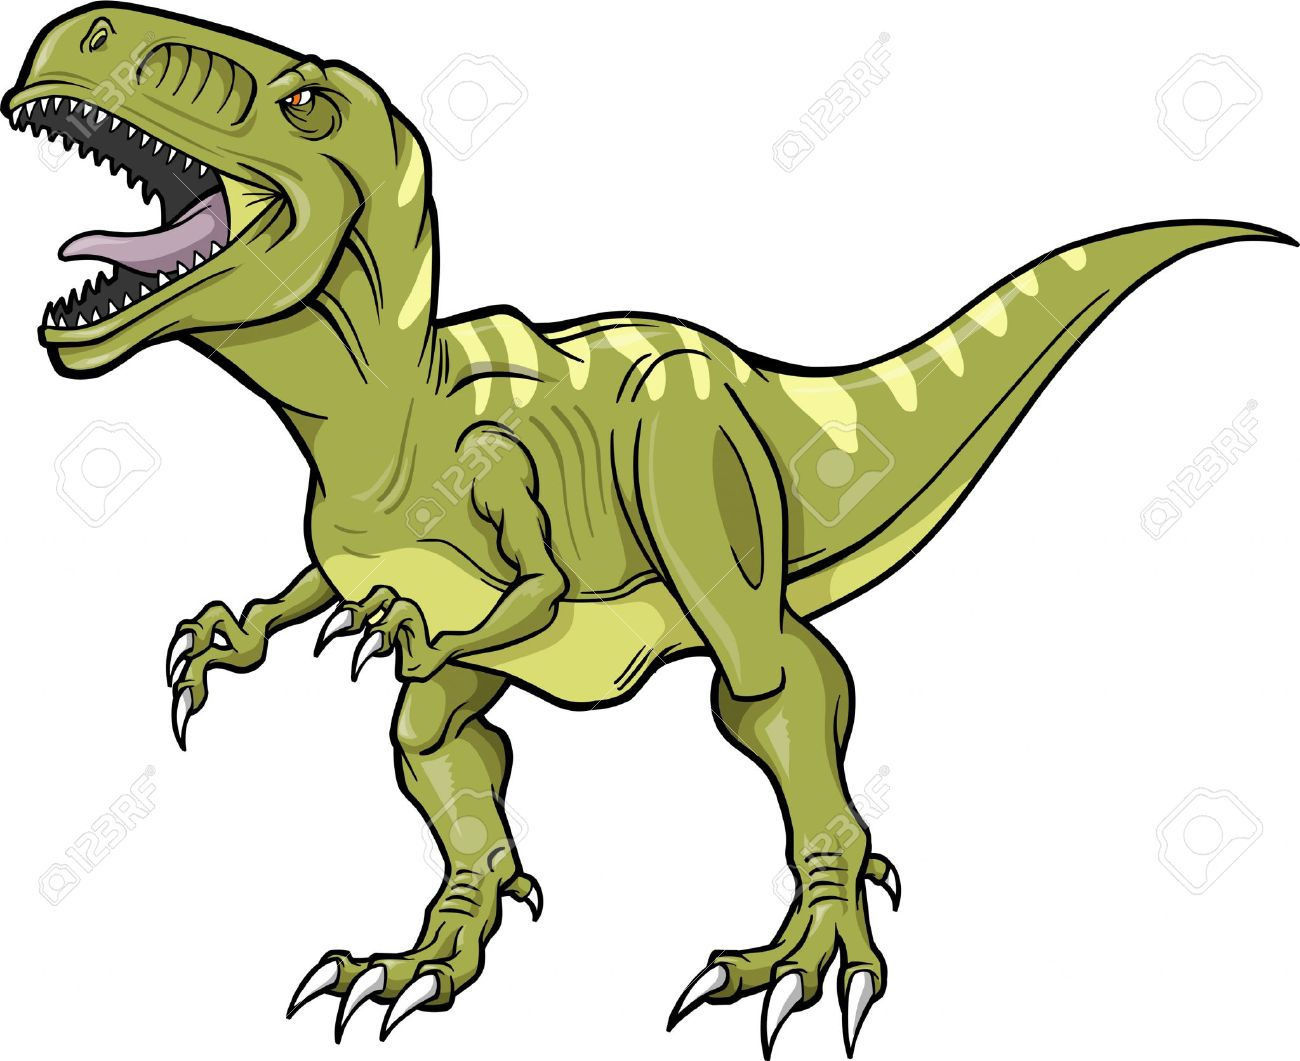 T Rex Clipart   Free download on ClipArtMag